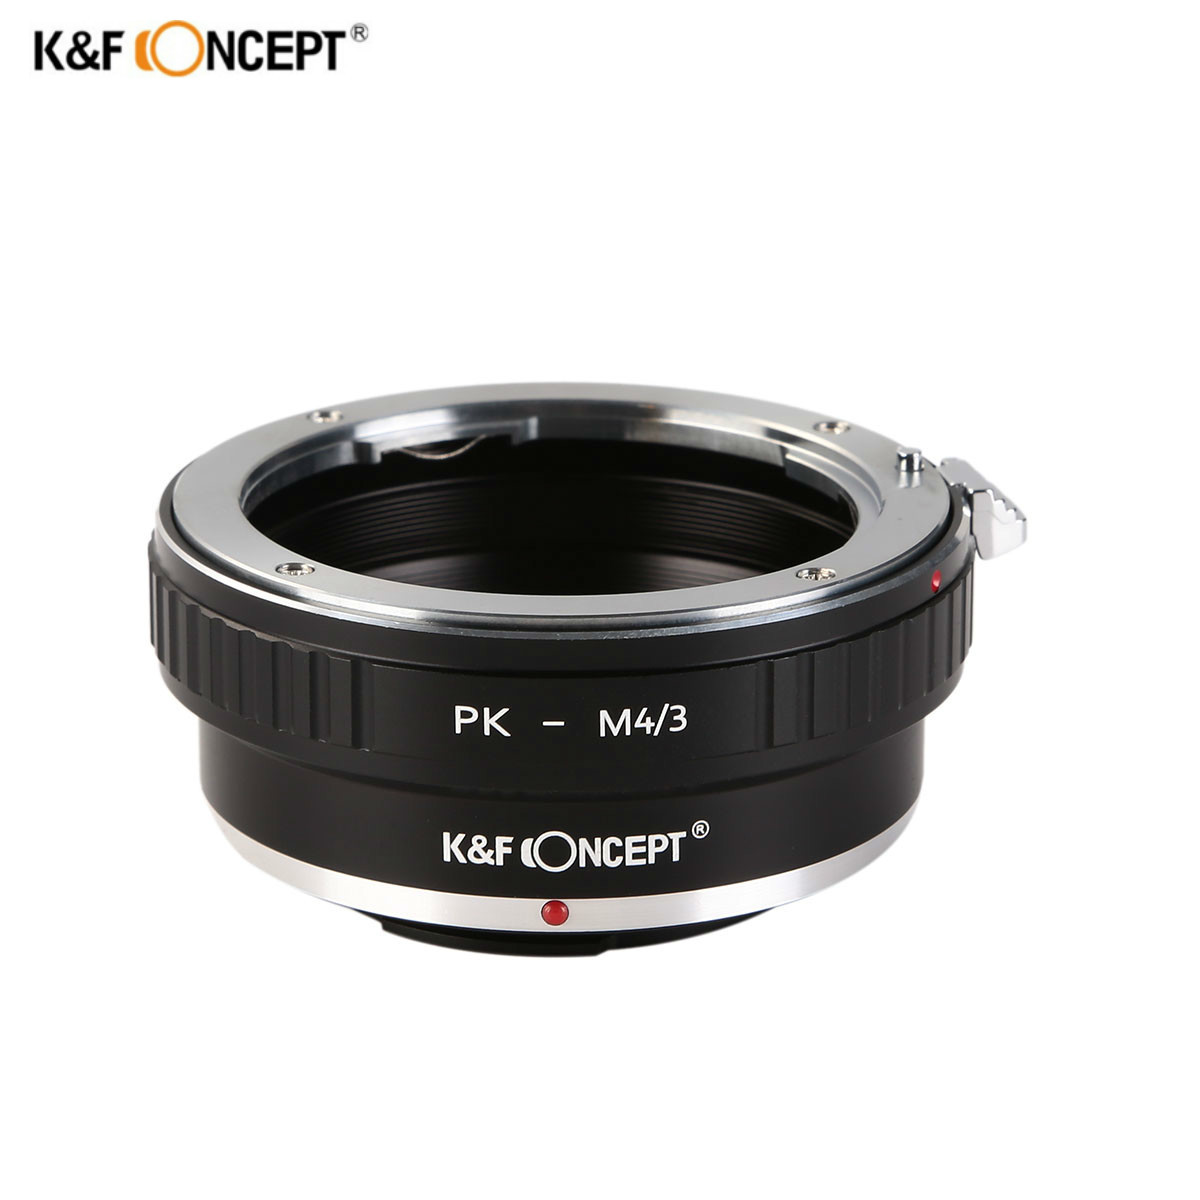 K&F CONCEPT Lens Mount Adapter Ring for Pentax K PK Lens to Olympus Panasonic Micro 4/3 M4/3 Mount Adapter G10 G3 GF3 GF1 цены